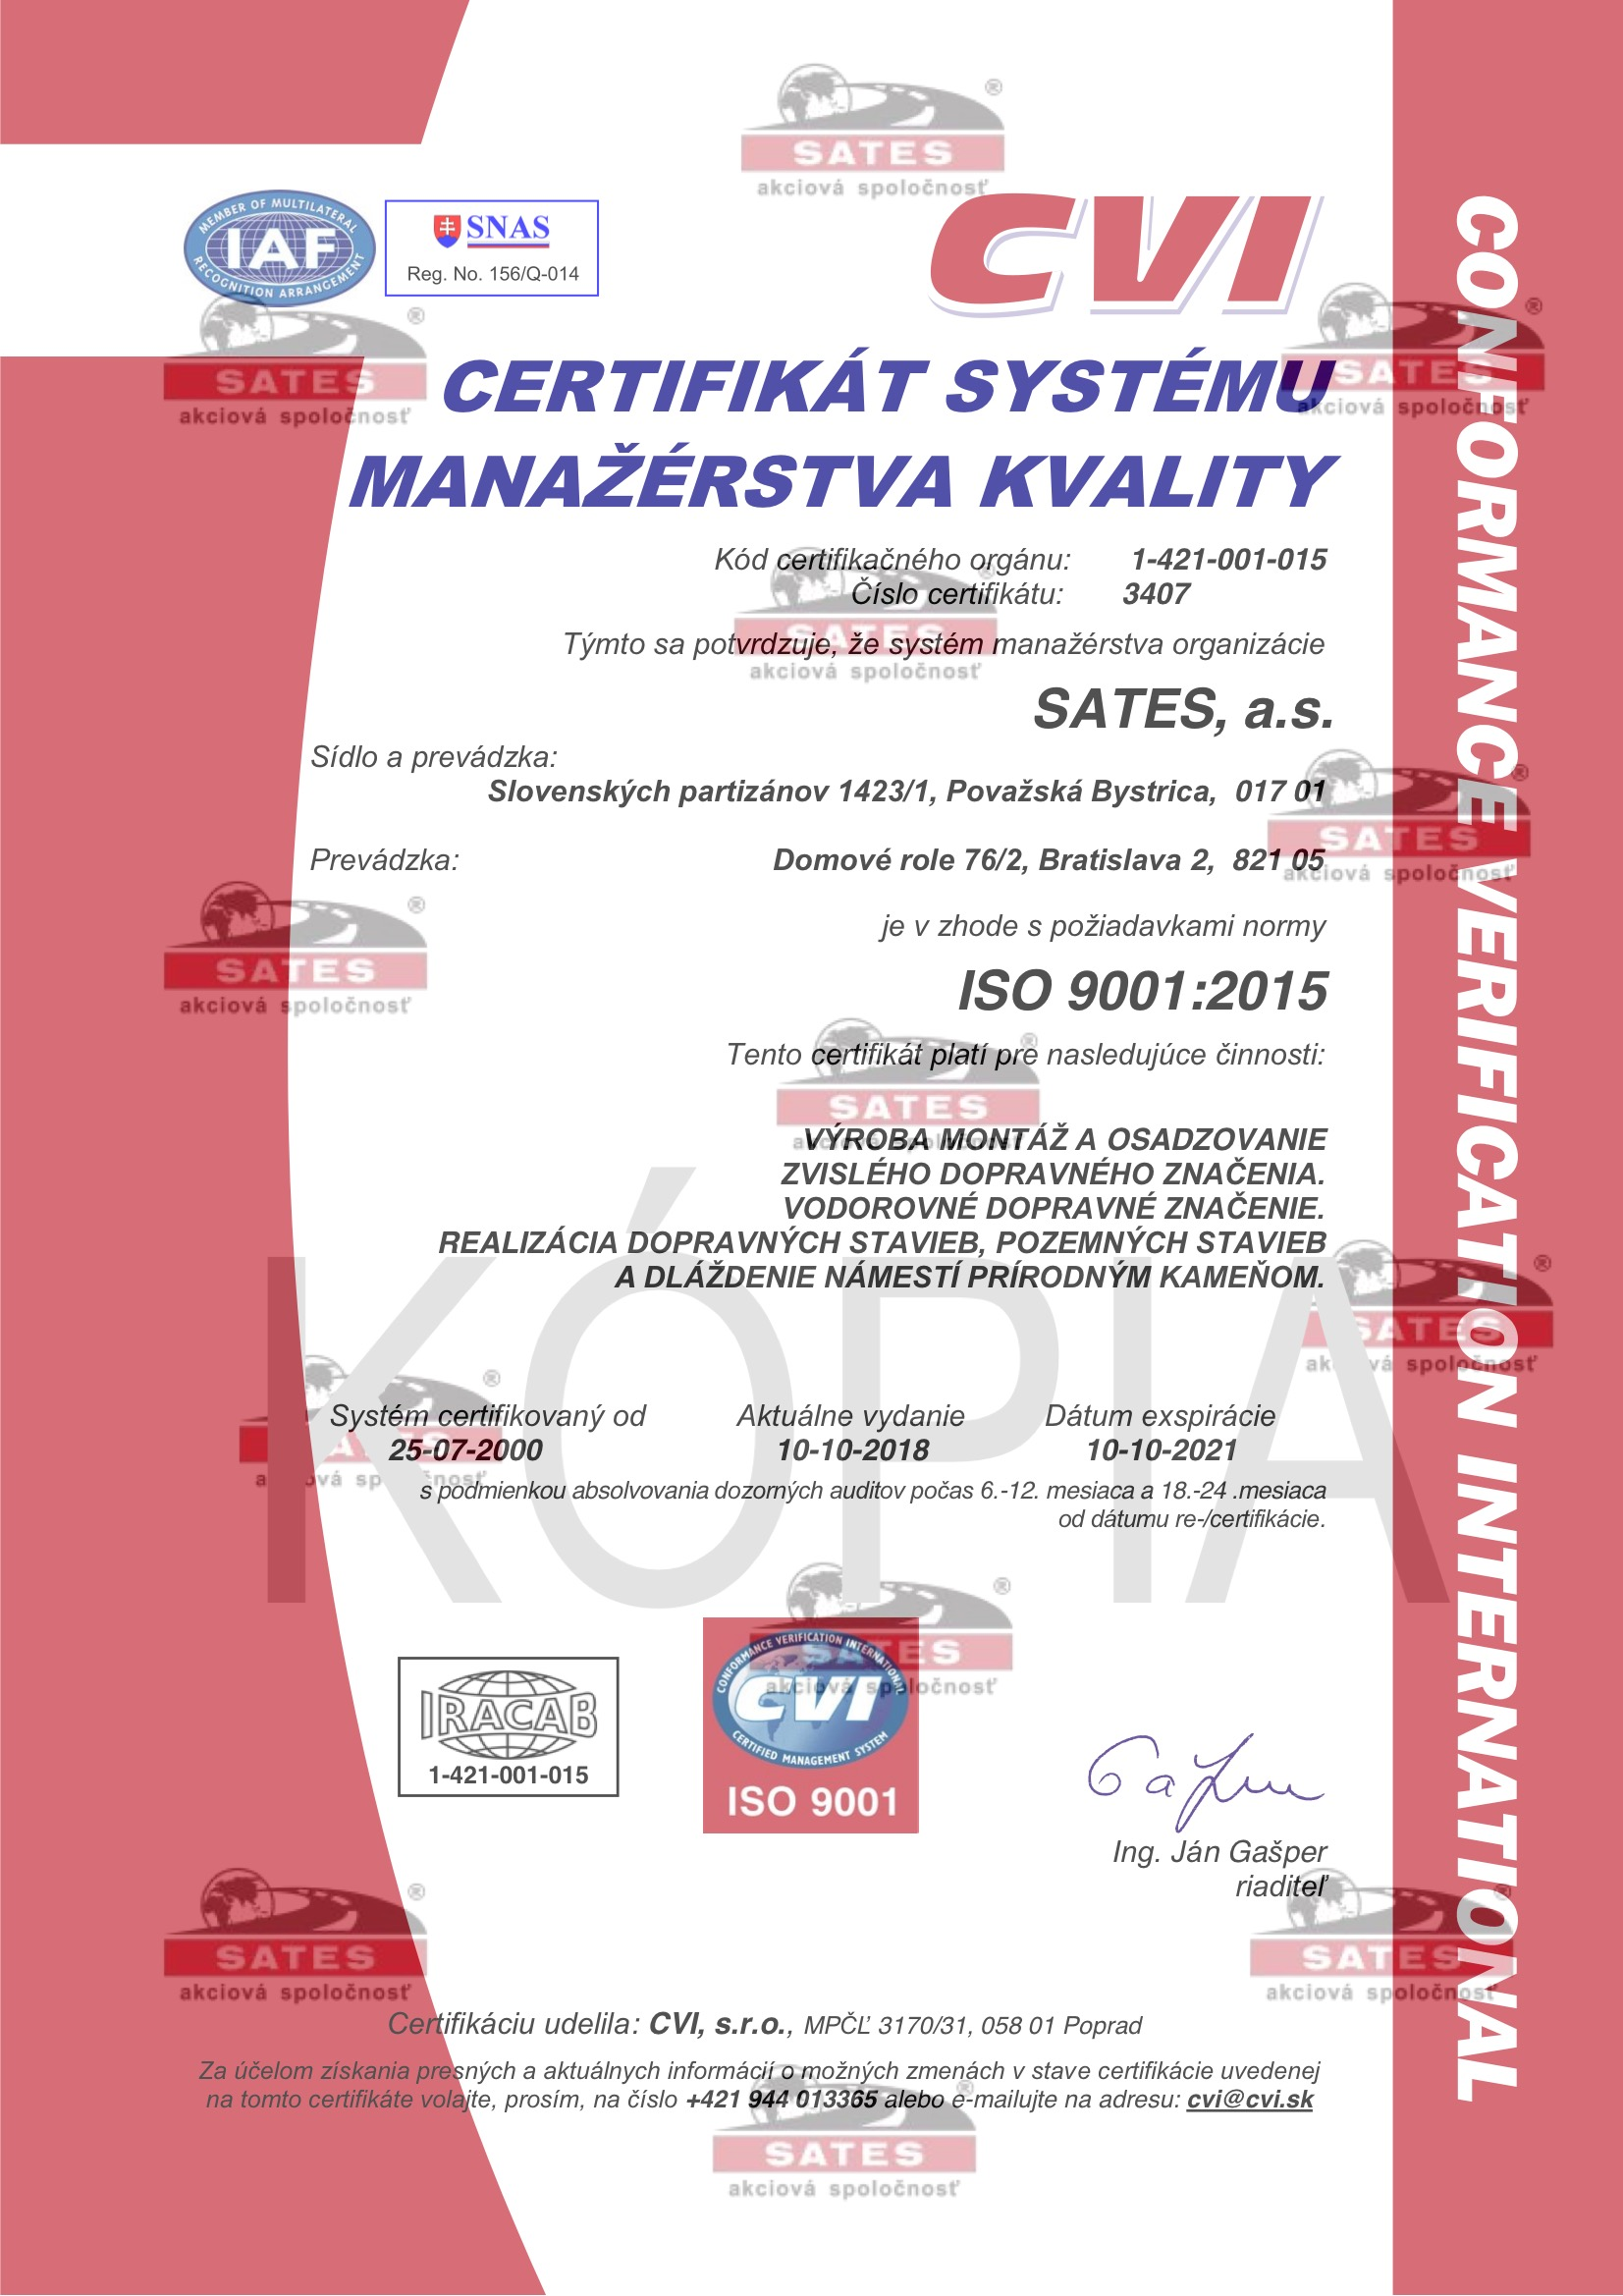 ISO 9001:2015 – ISO 14001:2015 – OHSAS 18001:2007